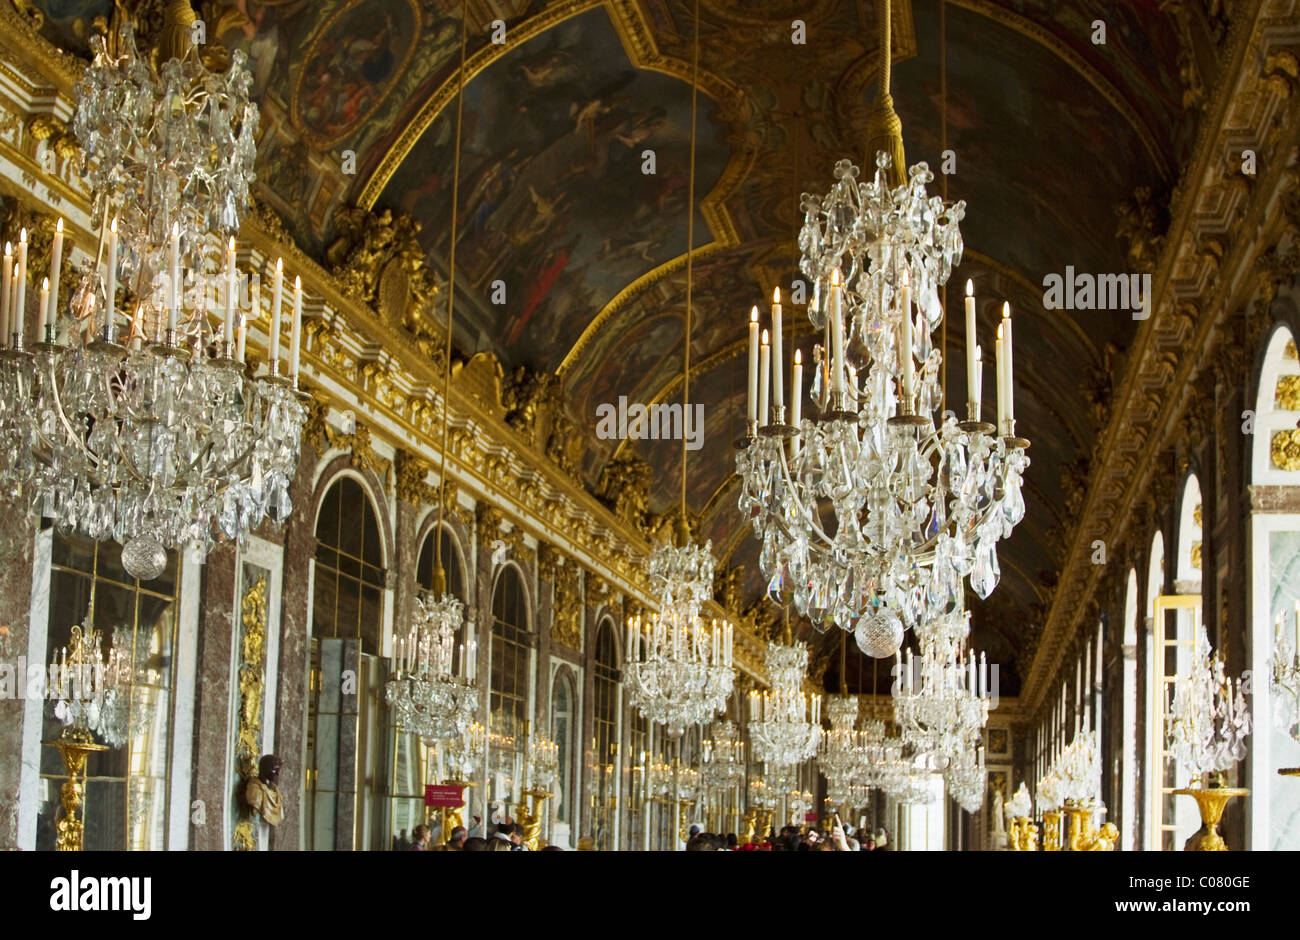 Chandeliers hanging in the corridor of a palace hall of mirrors chandeliers hanging in the corridor of a palace hall of mirrors chateau de versailles versailles paris france sciox Images